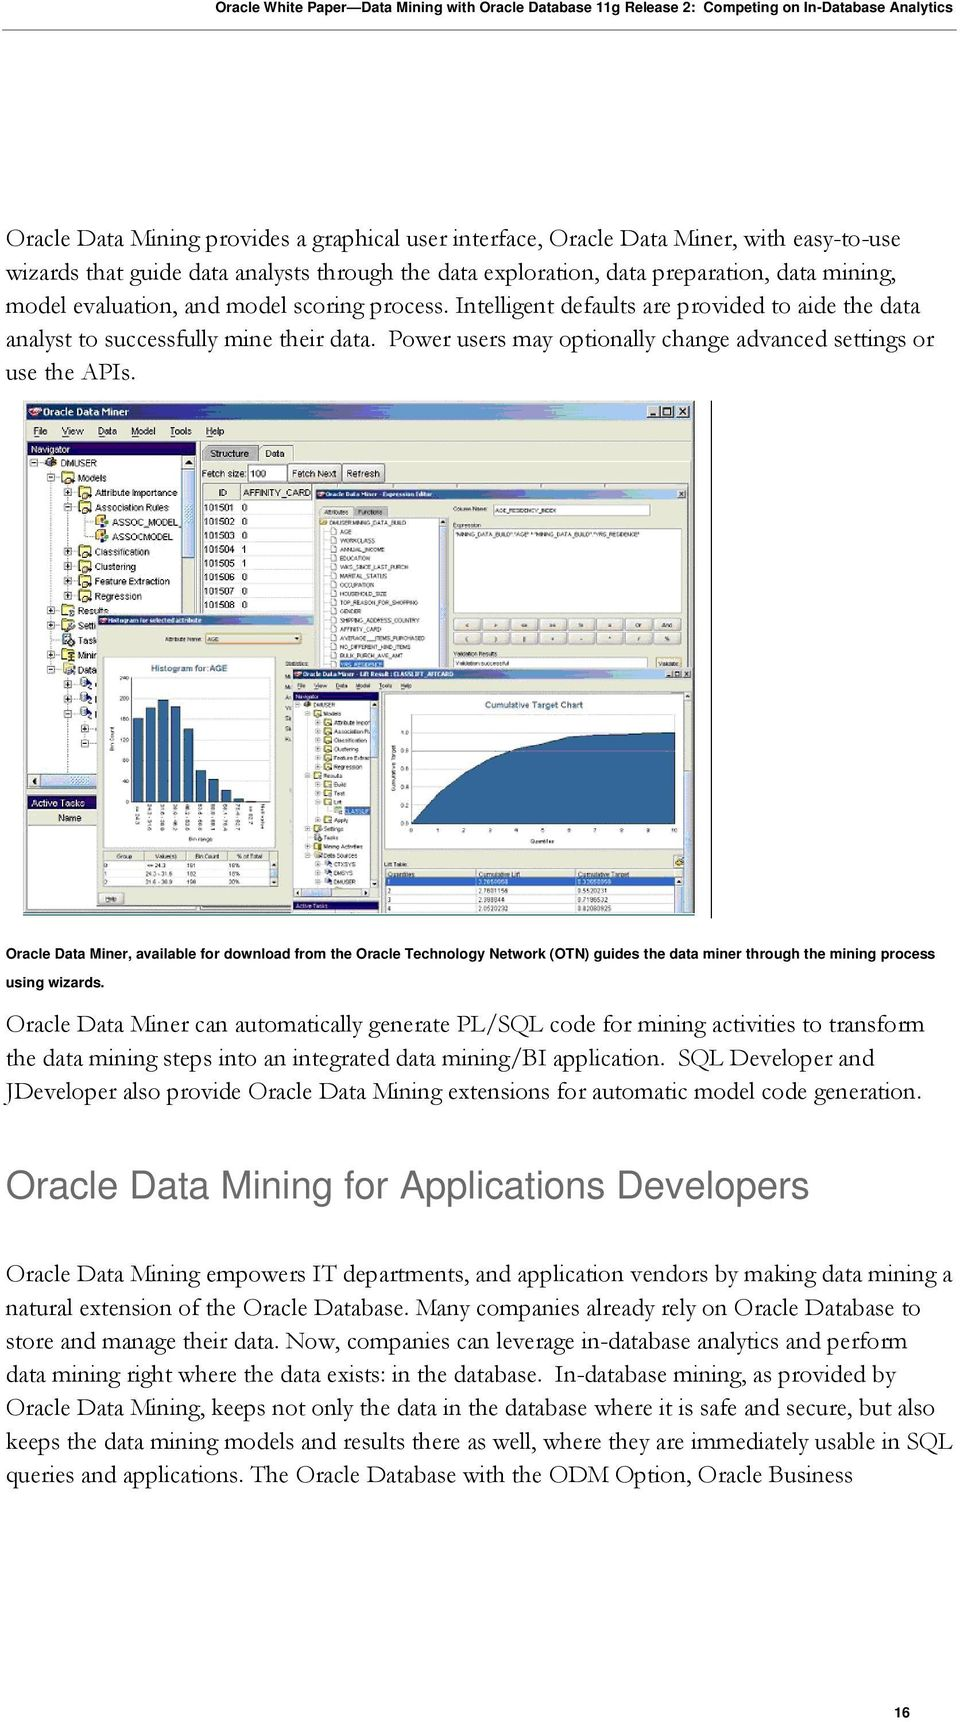 Oracle Data Miner, available for download from the Oracle Technology Network (OTN) guides the data miner through the mining process using wizards.